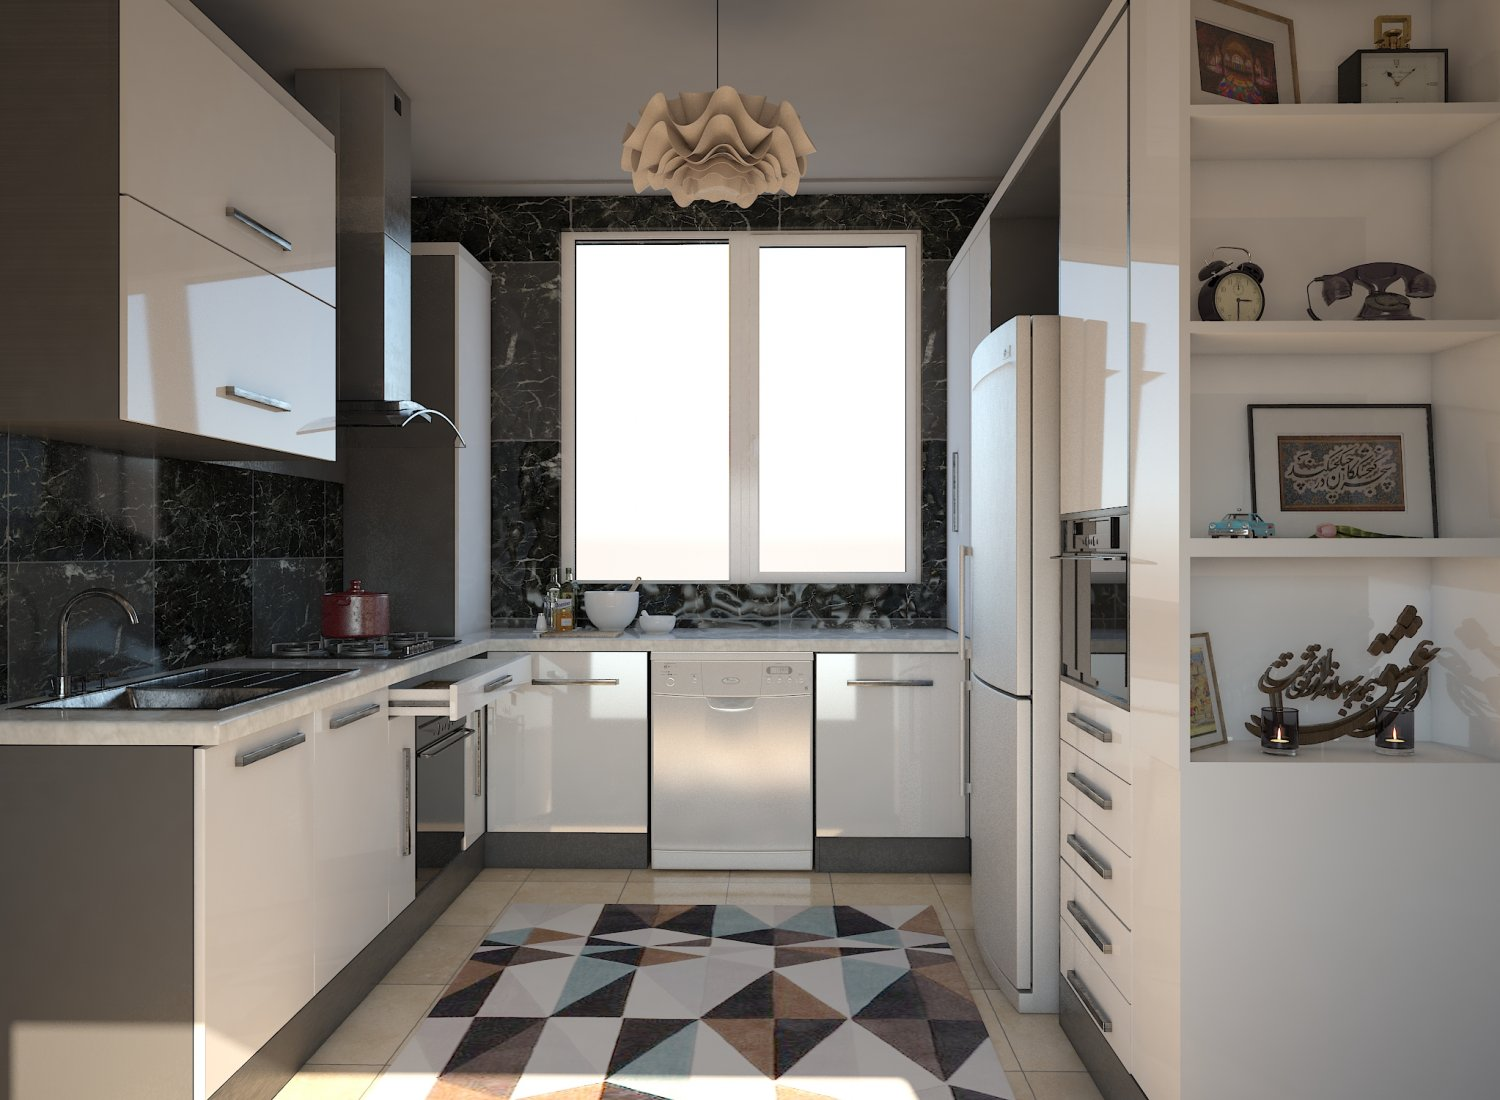 Kitchen 3d Model - Kitchen Appliances Tips And Review